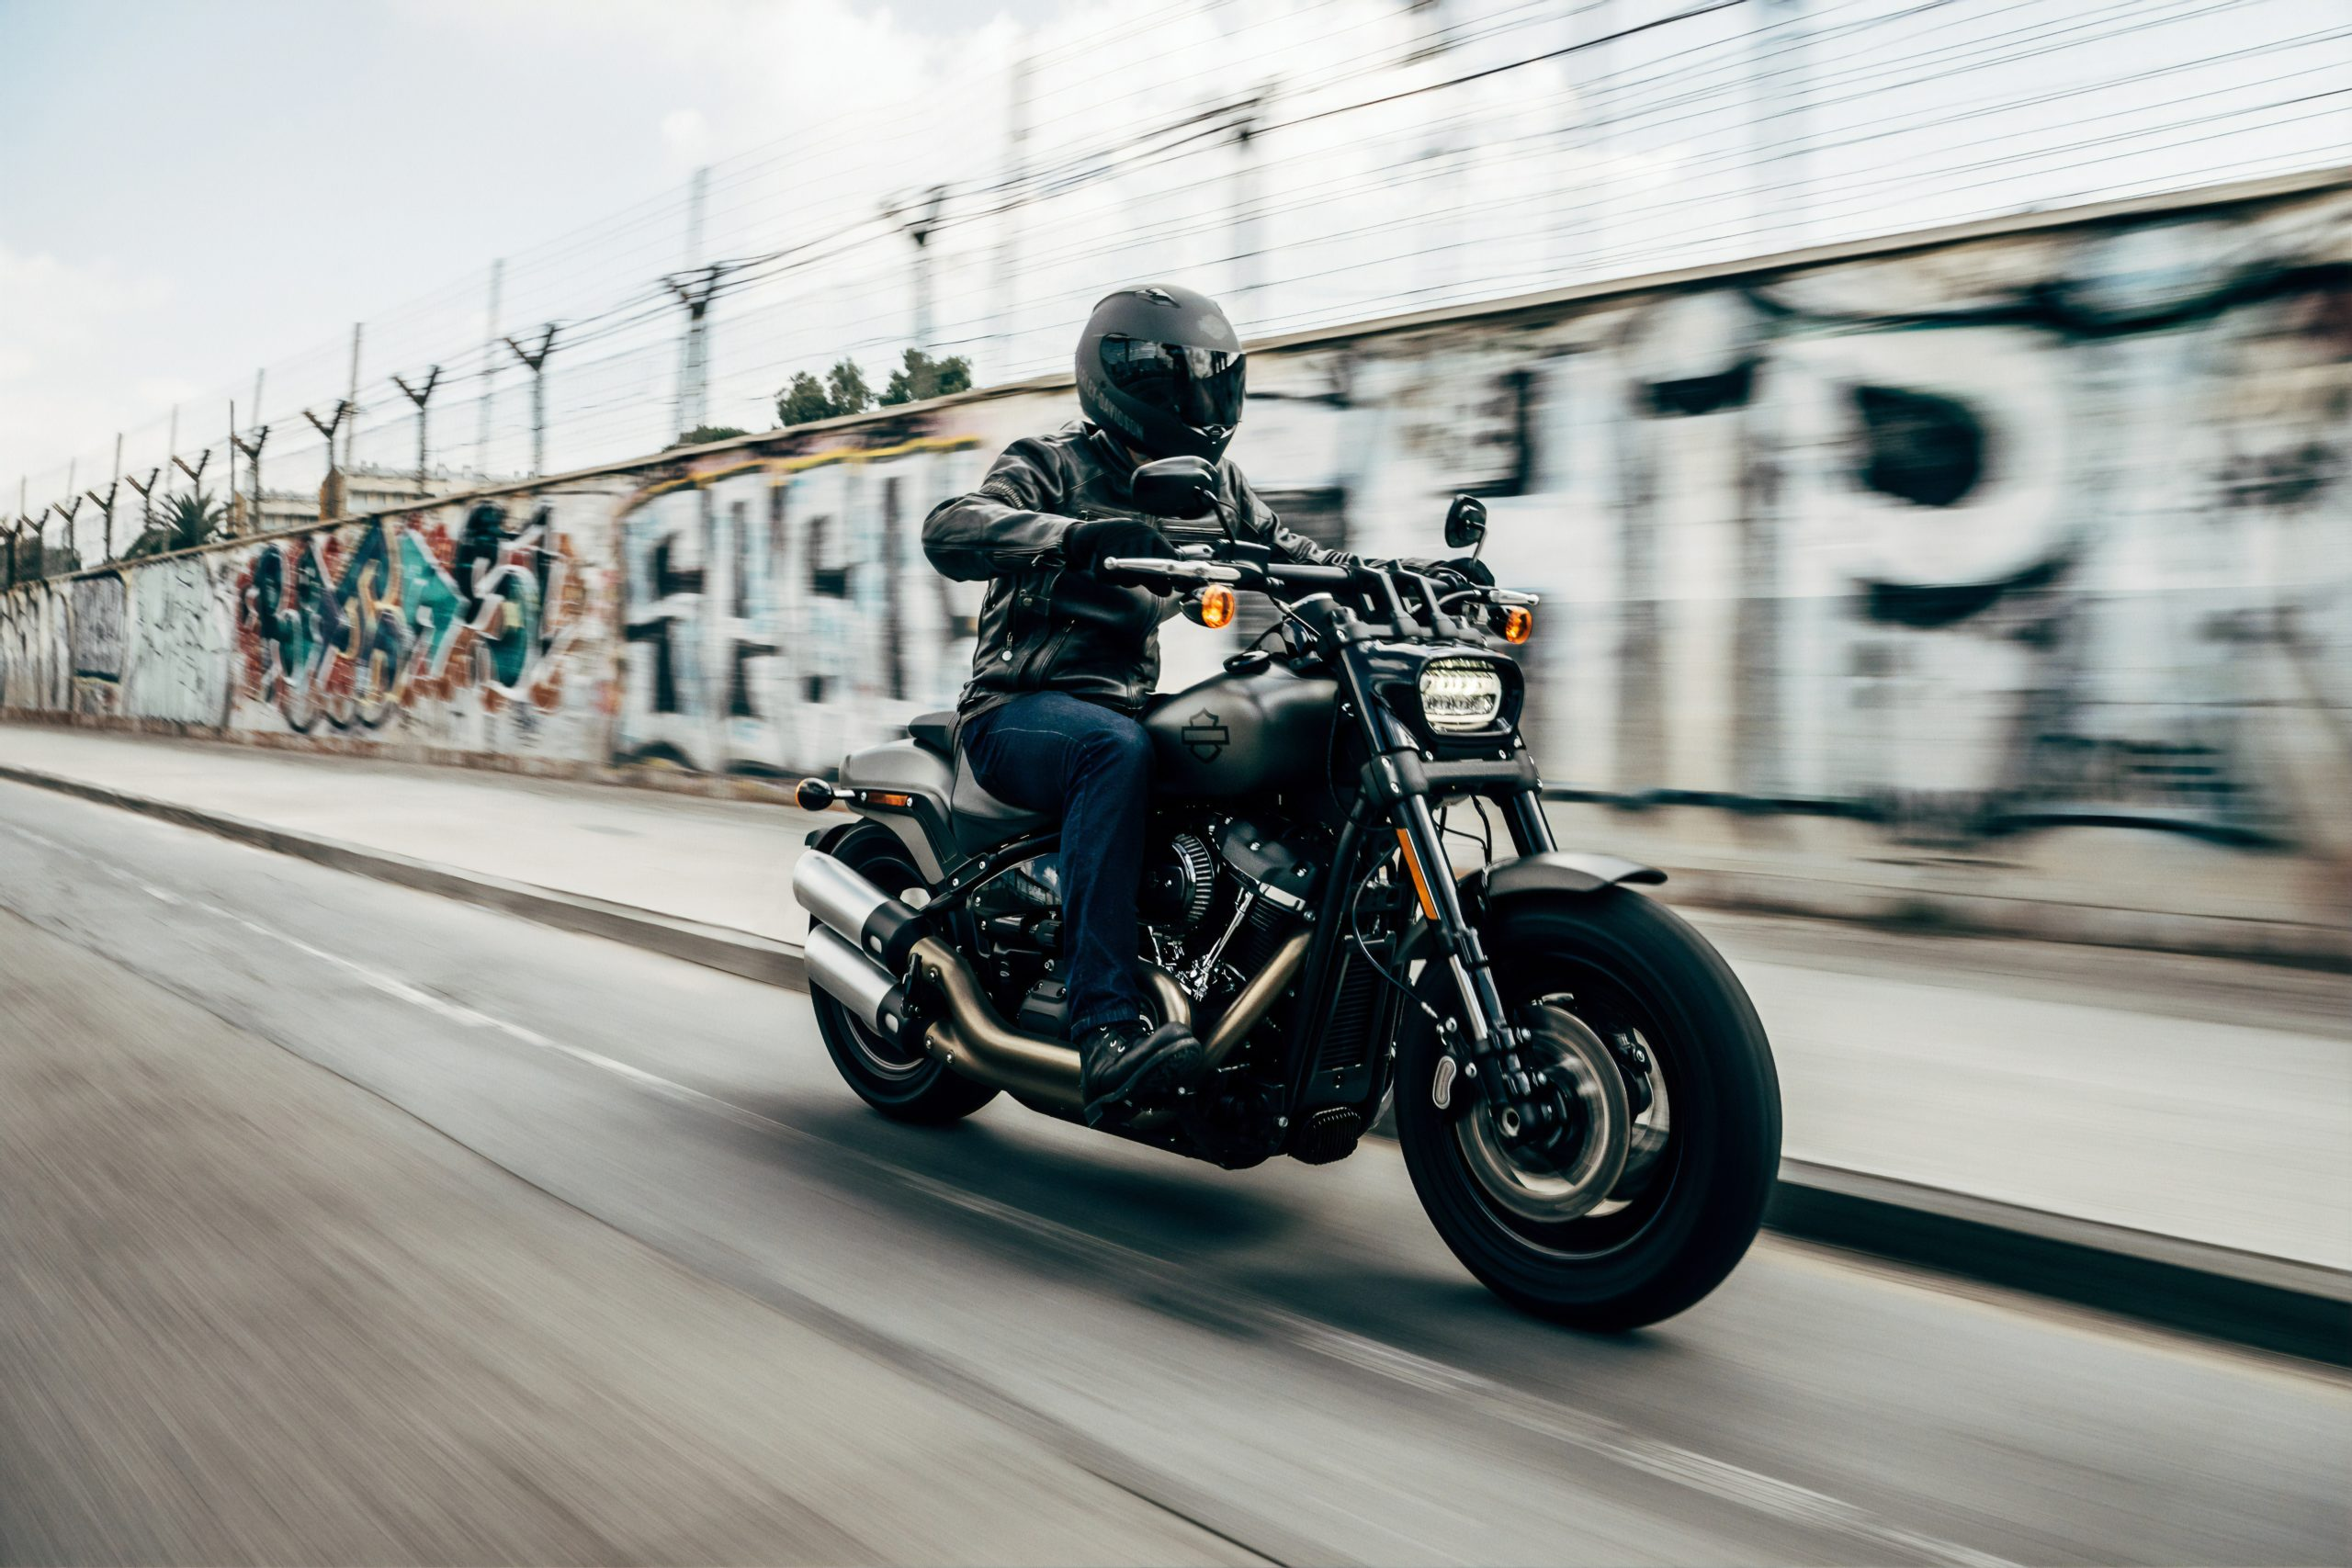 Where to Look for Best Motorcycle Riding Gear?